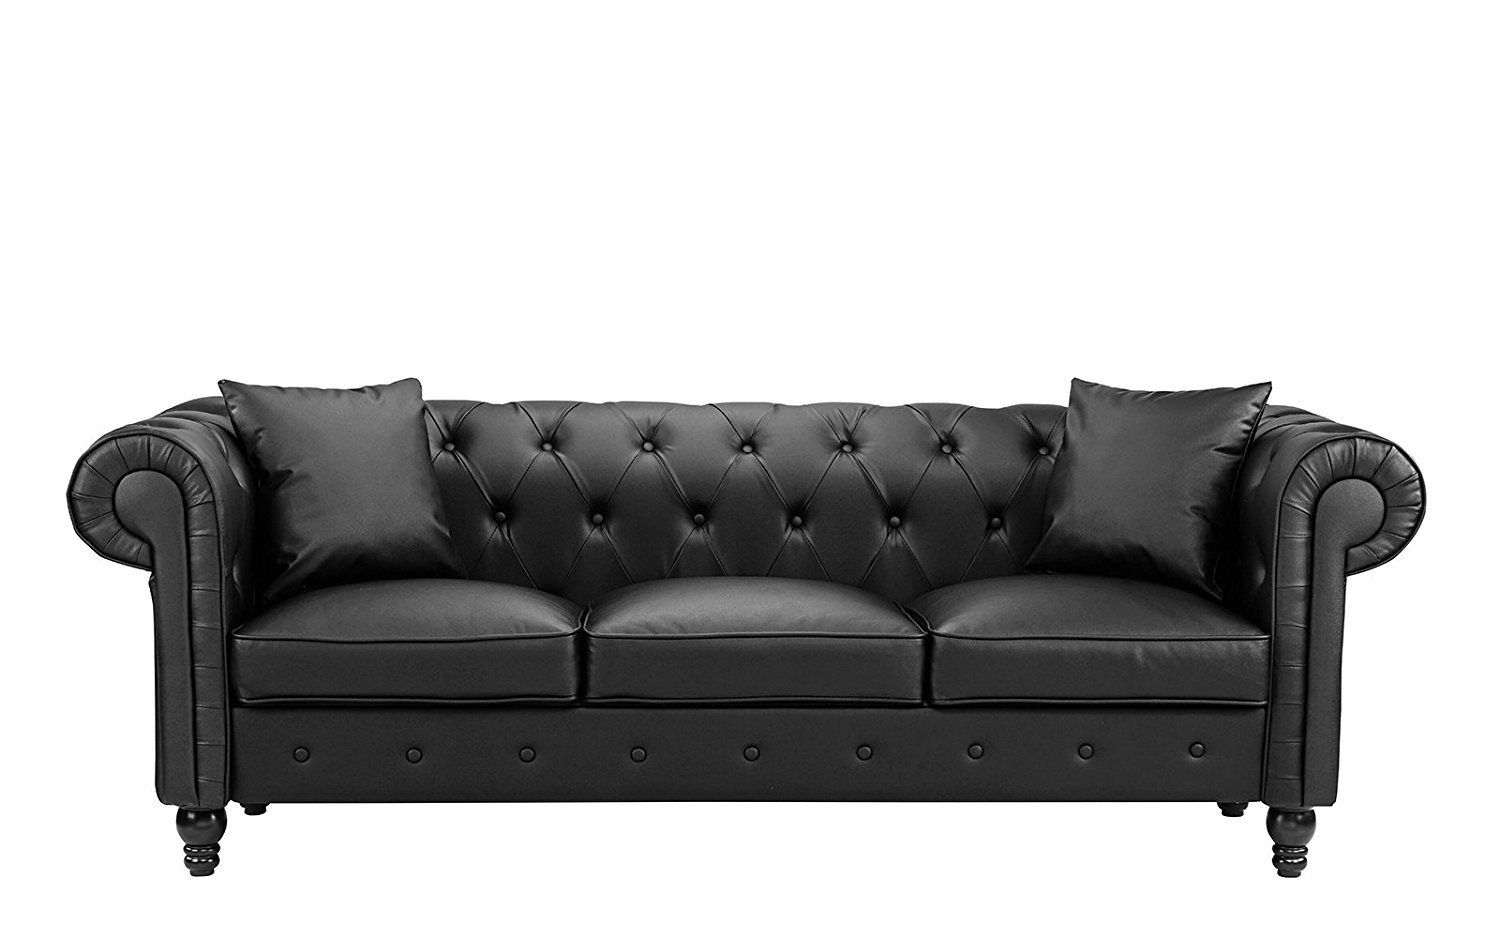 Fabulous New Century Black Victorian Bonded Faux Leather Living Room Alphanode Cool Chair Designs And Ideas Alphanodeonline